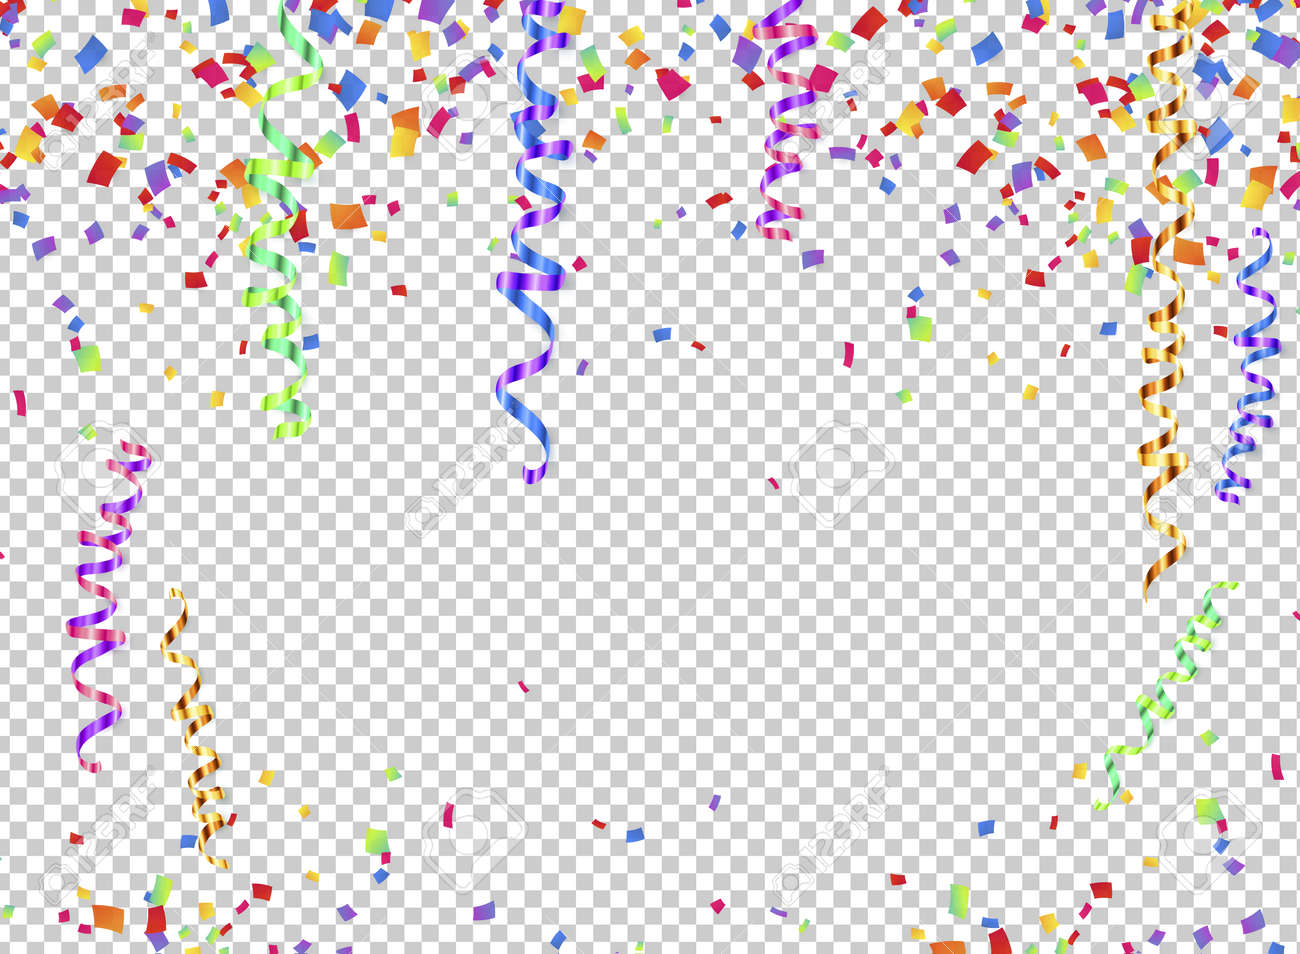 Colorful serpentine and confetti on transparent background, transparency grid imitation - 70371989